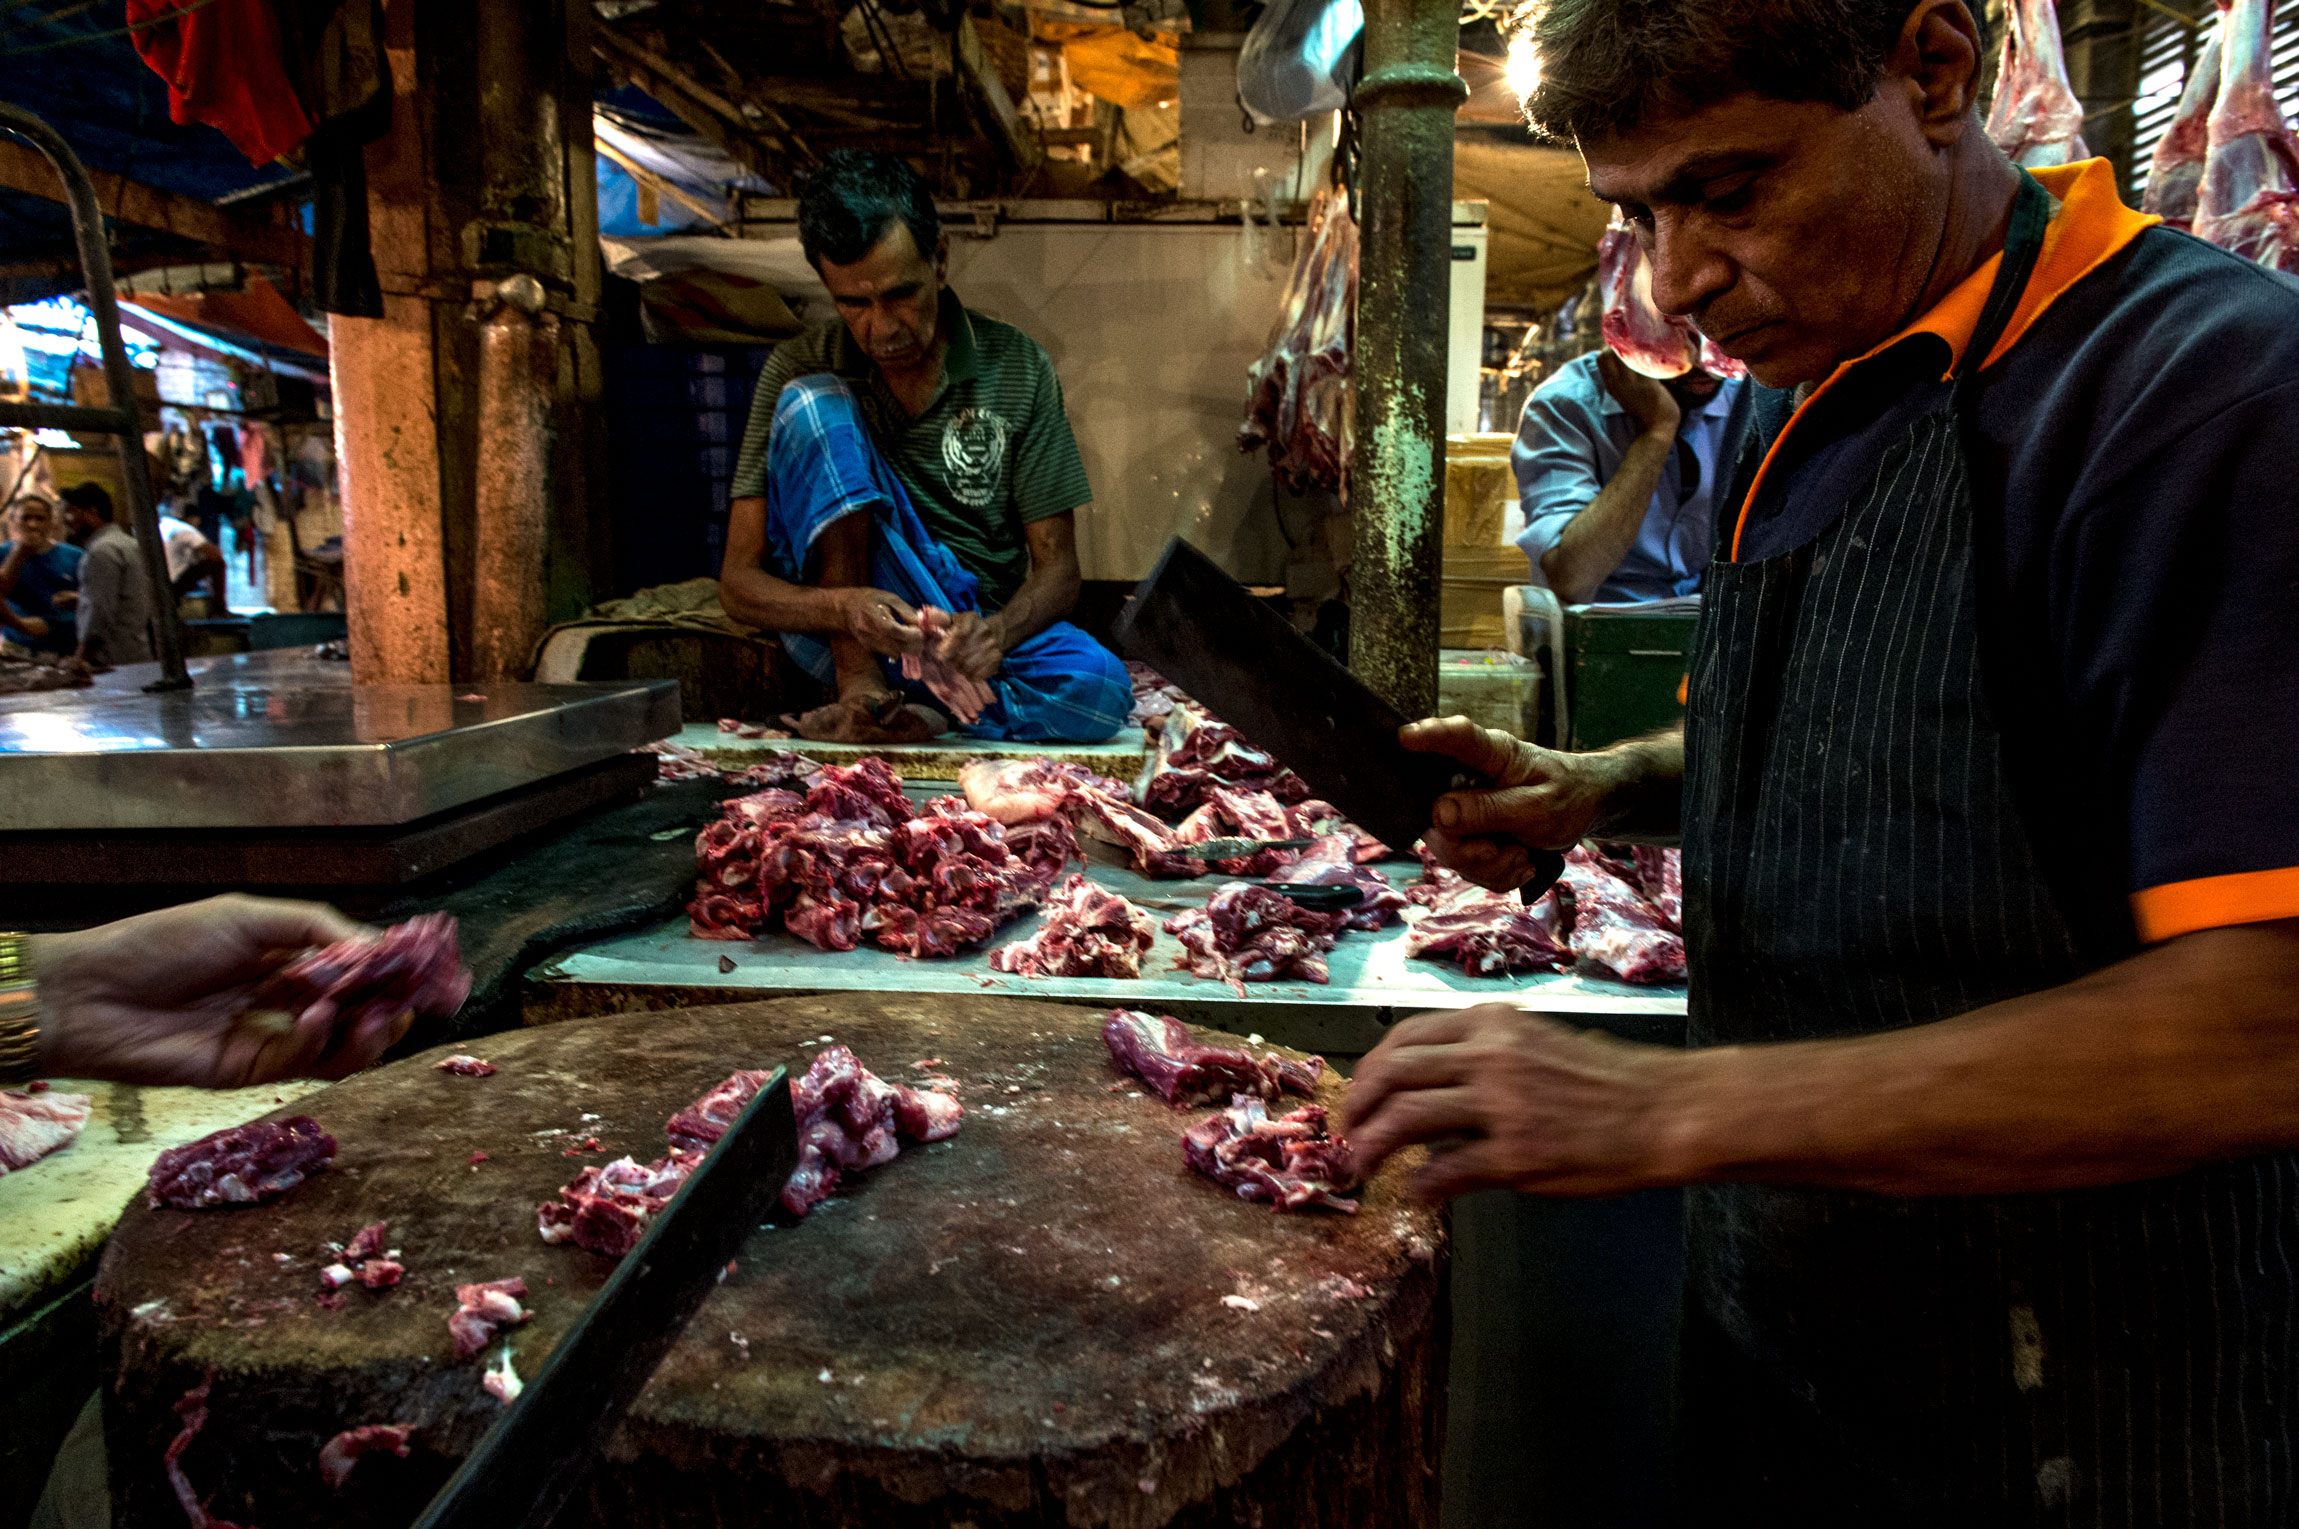 New Market Kolkata India slaughterhouse | Restaurant owner and chef, separating meat from the bone.